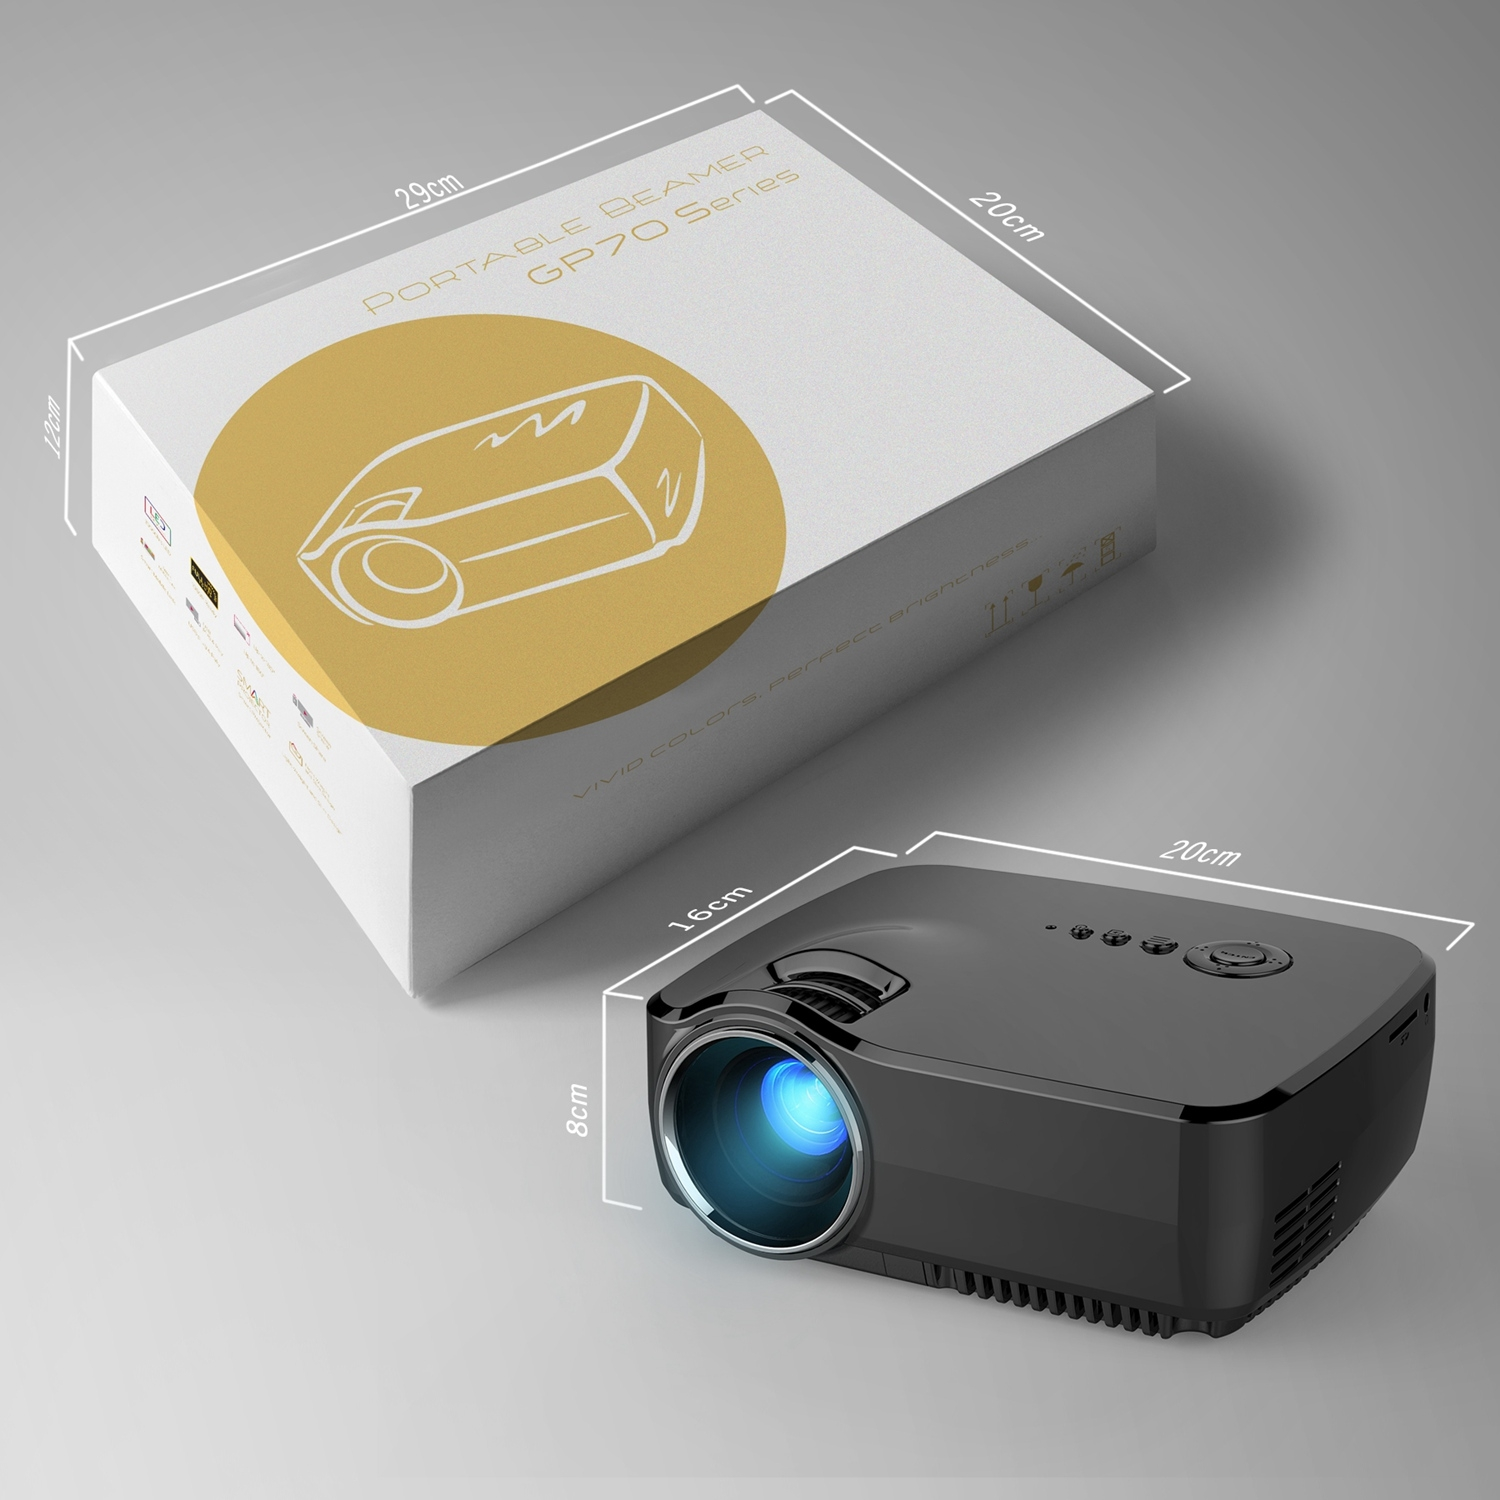 Mini Portable Video LED Projector 1080P for Outdoor Indoor Home Cinema Theater/Game/DVD/PC/Laptop Show